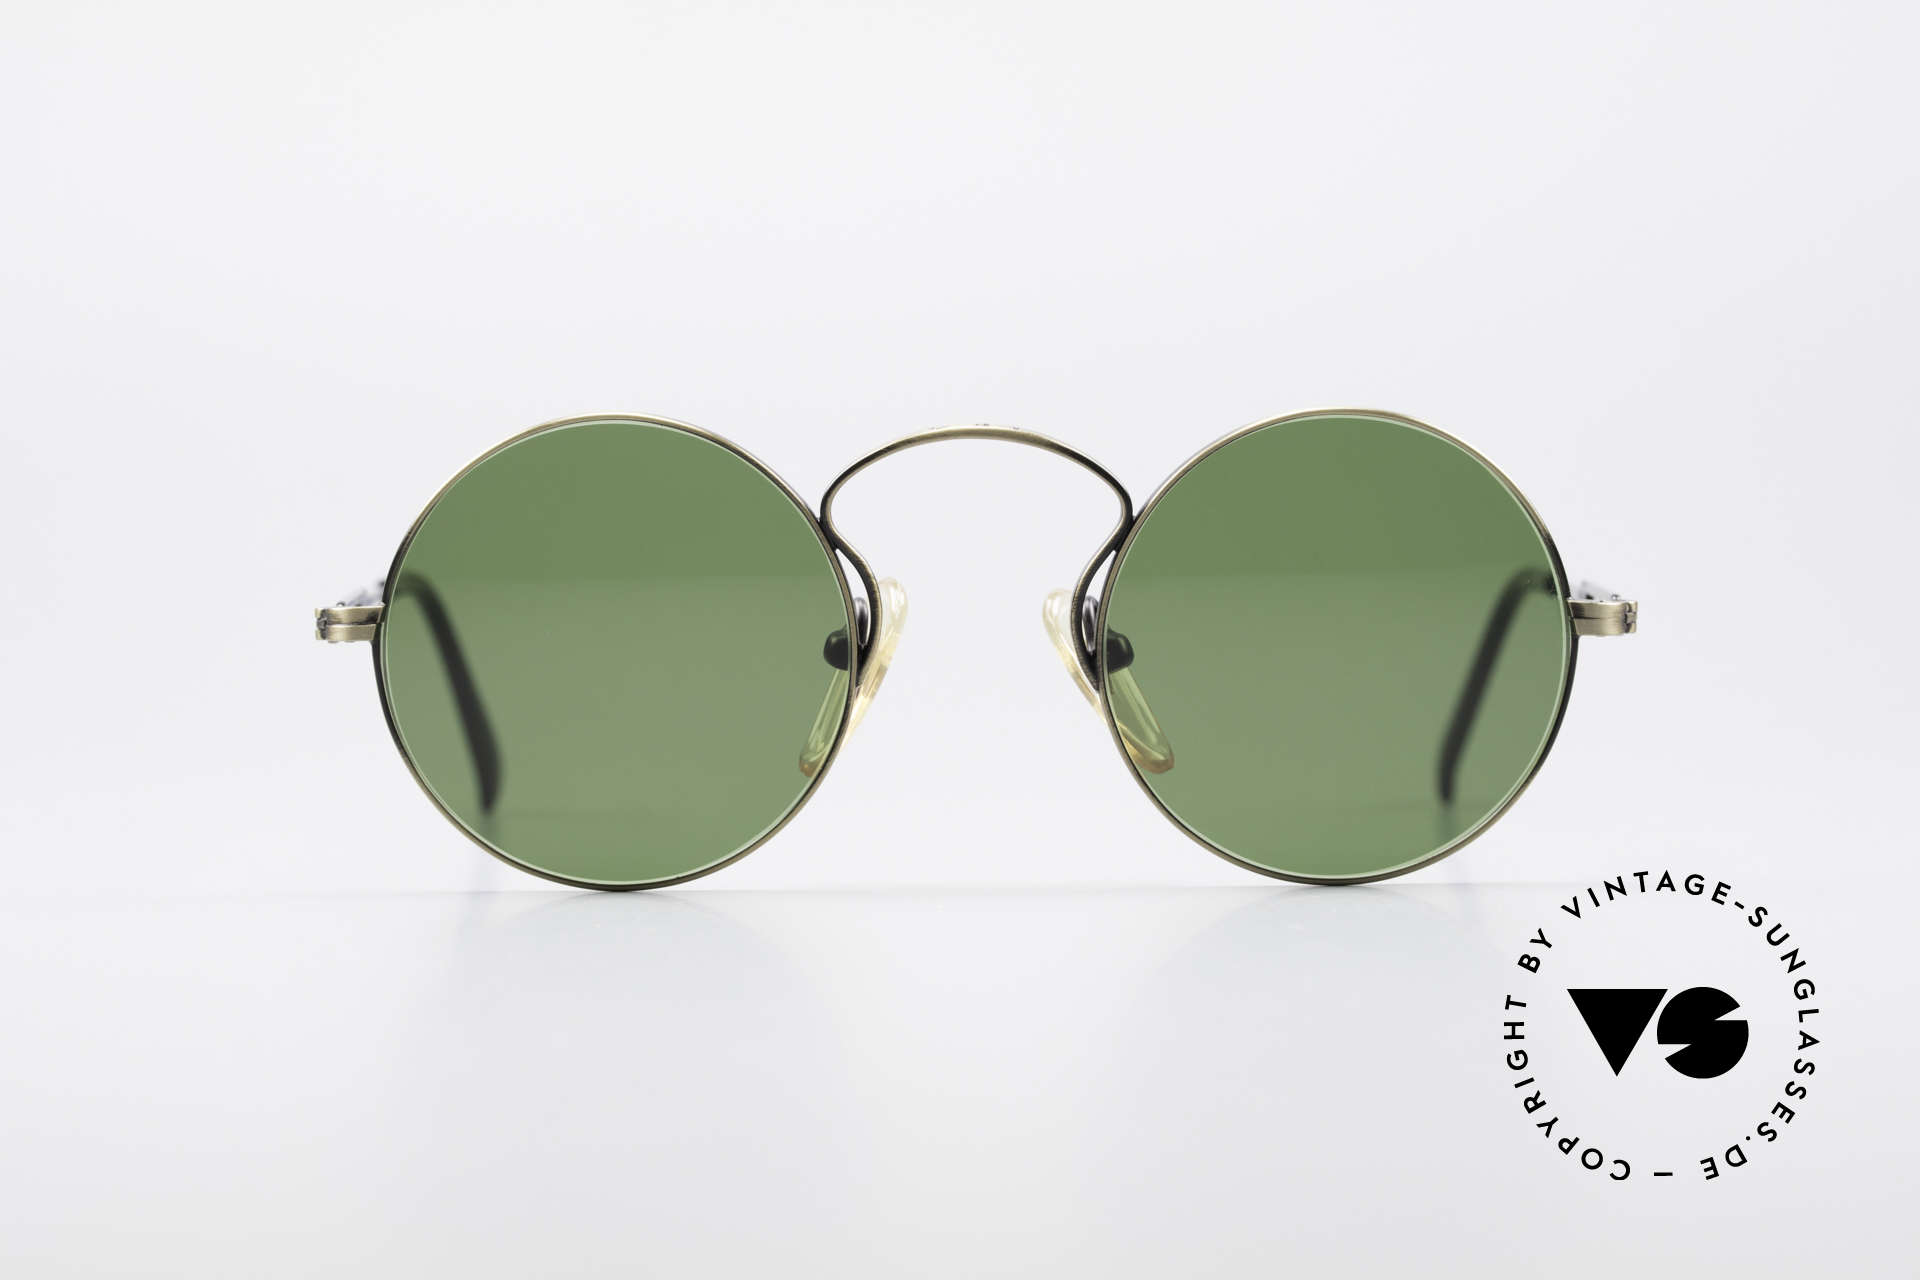 Jean Paul Gaultier 55-0172 90's Designer Sunglasses, round metal frame; lightweight & very comfortable, Made for Men and Women